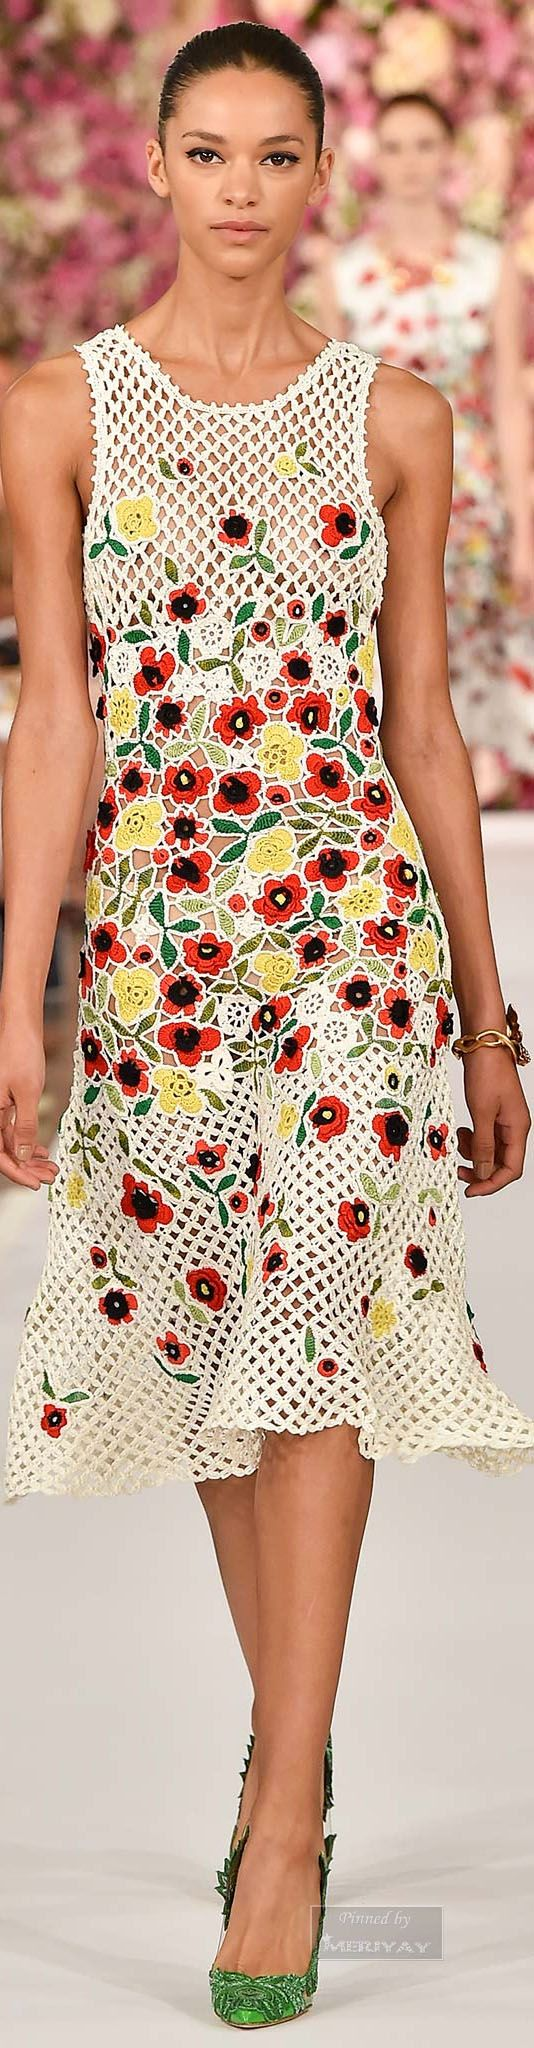 Oscar de la Renta.Spring 2015 | The House of Beccaria#